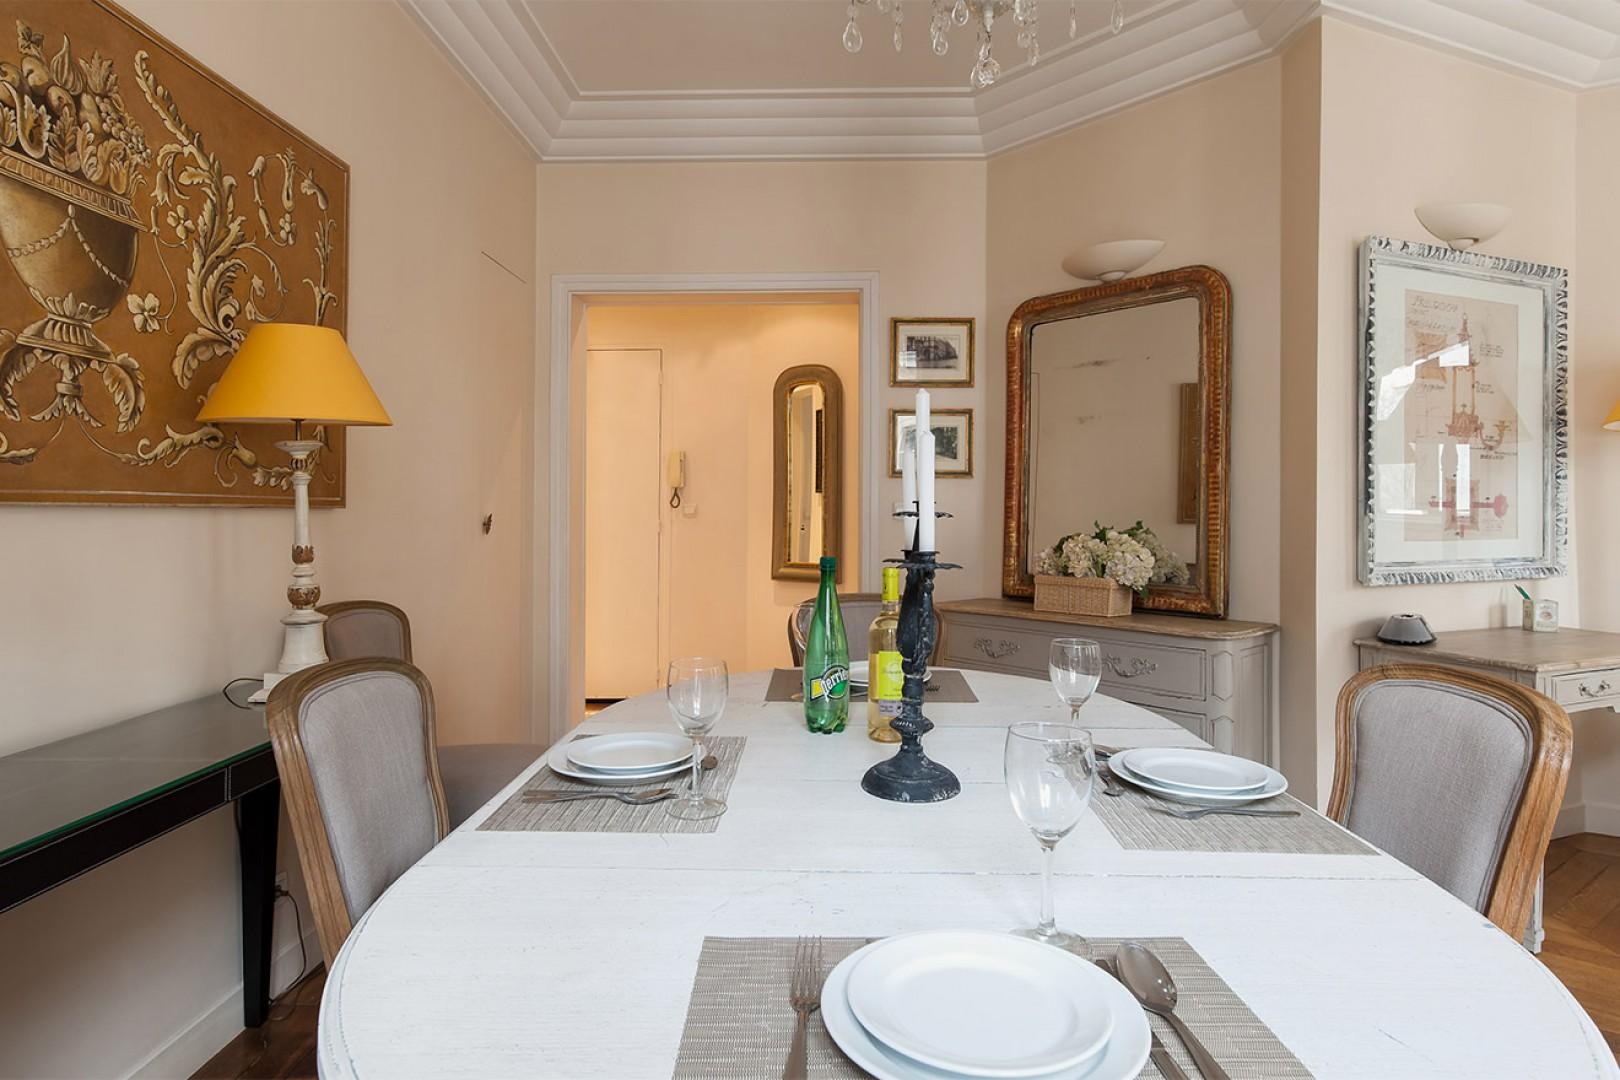 The dining table opens up to seat six guests.